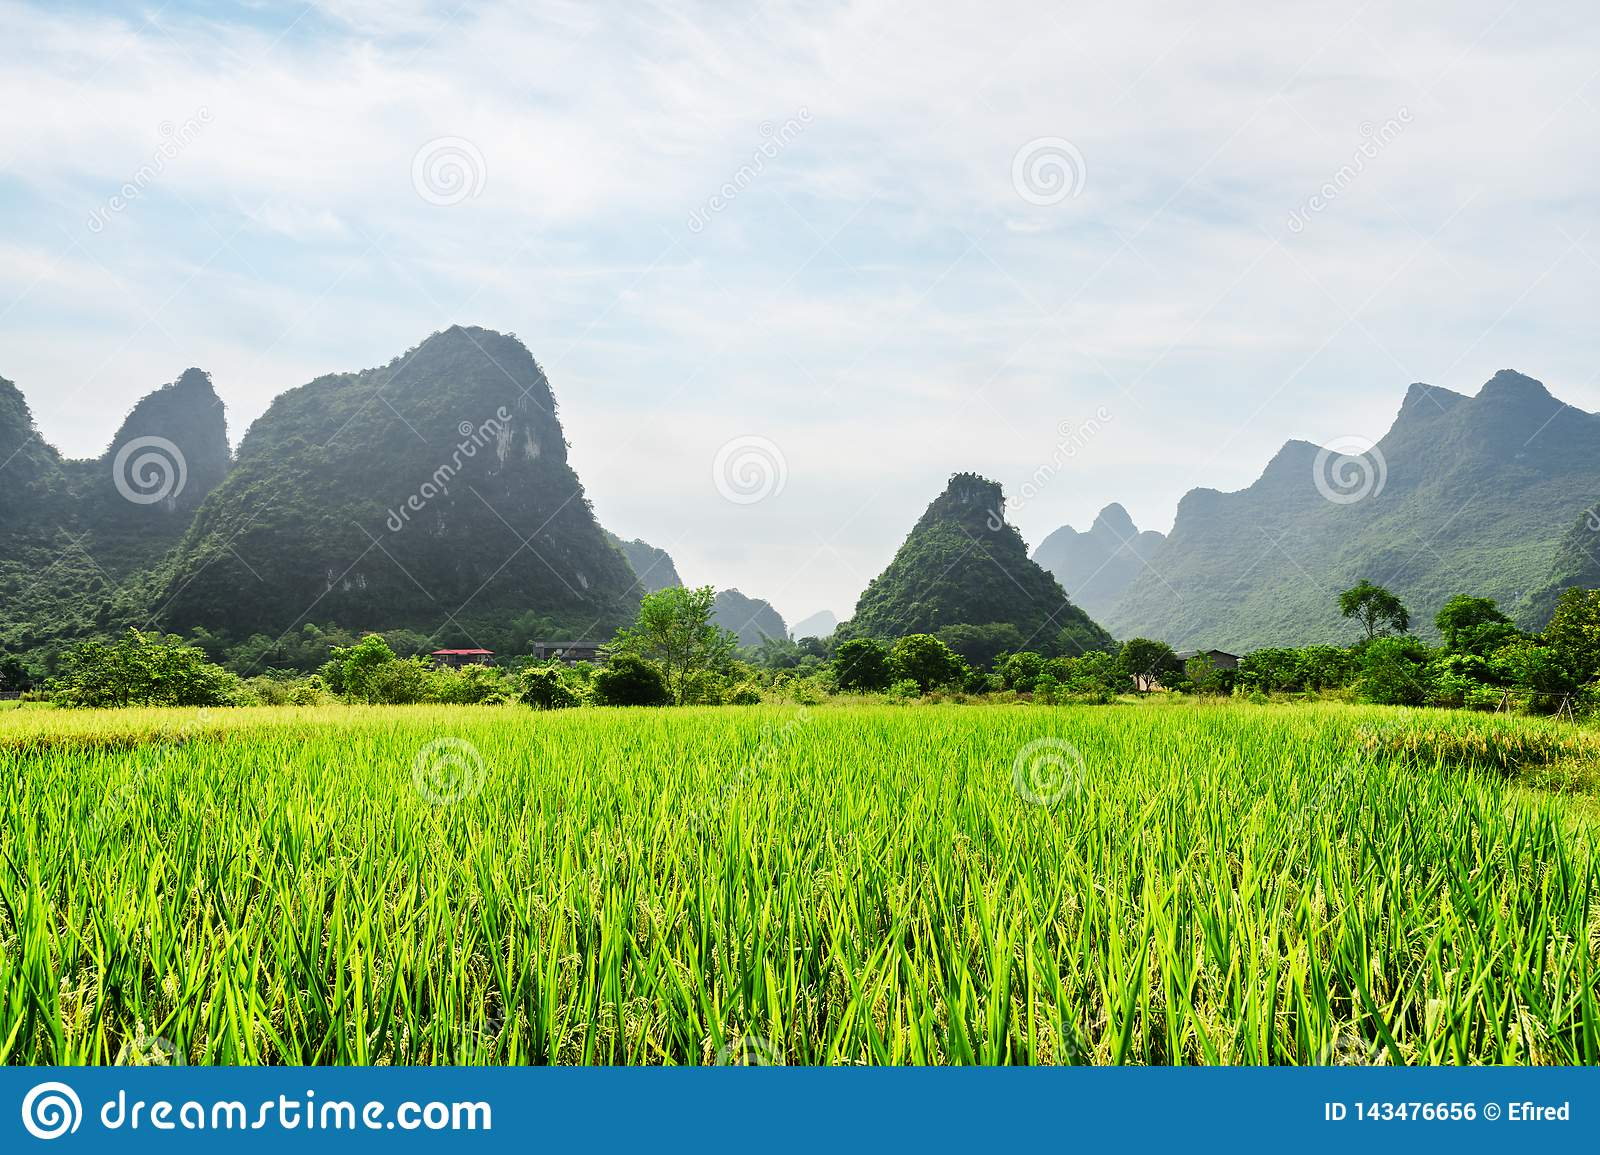 Beautiful view of green rice field and scenic karst mountains